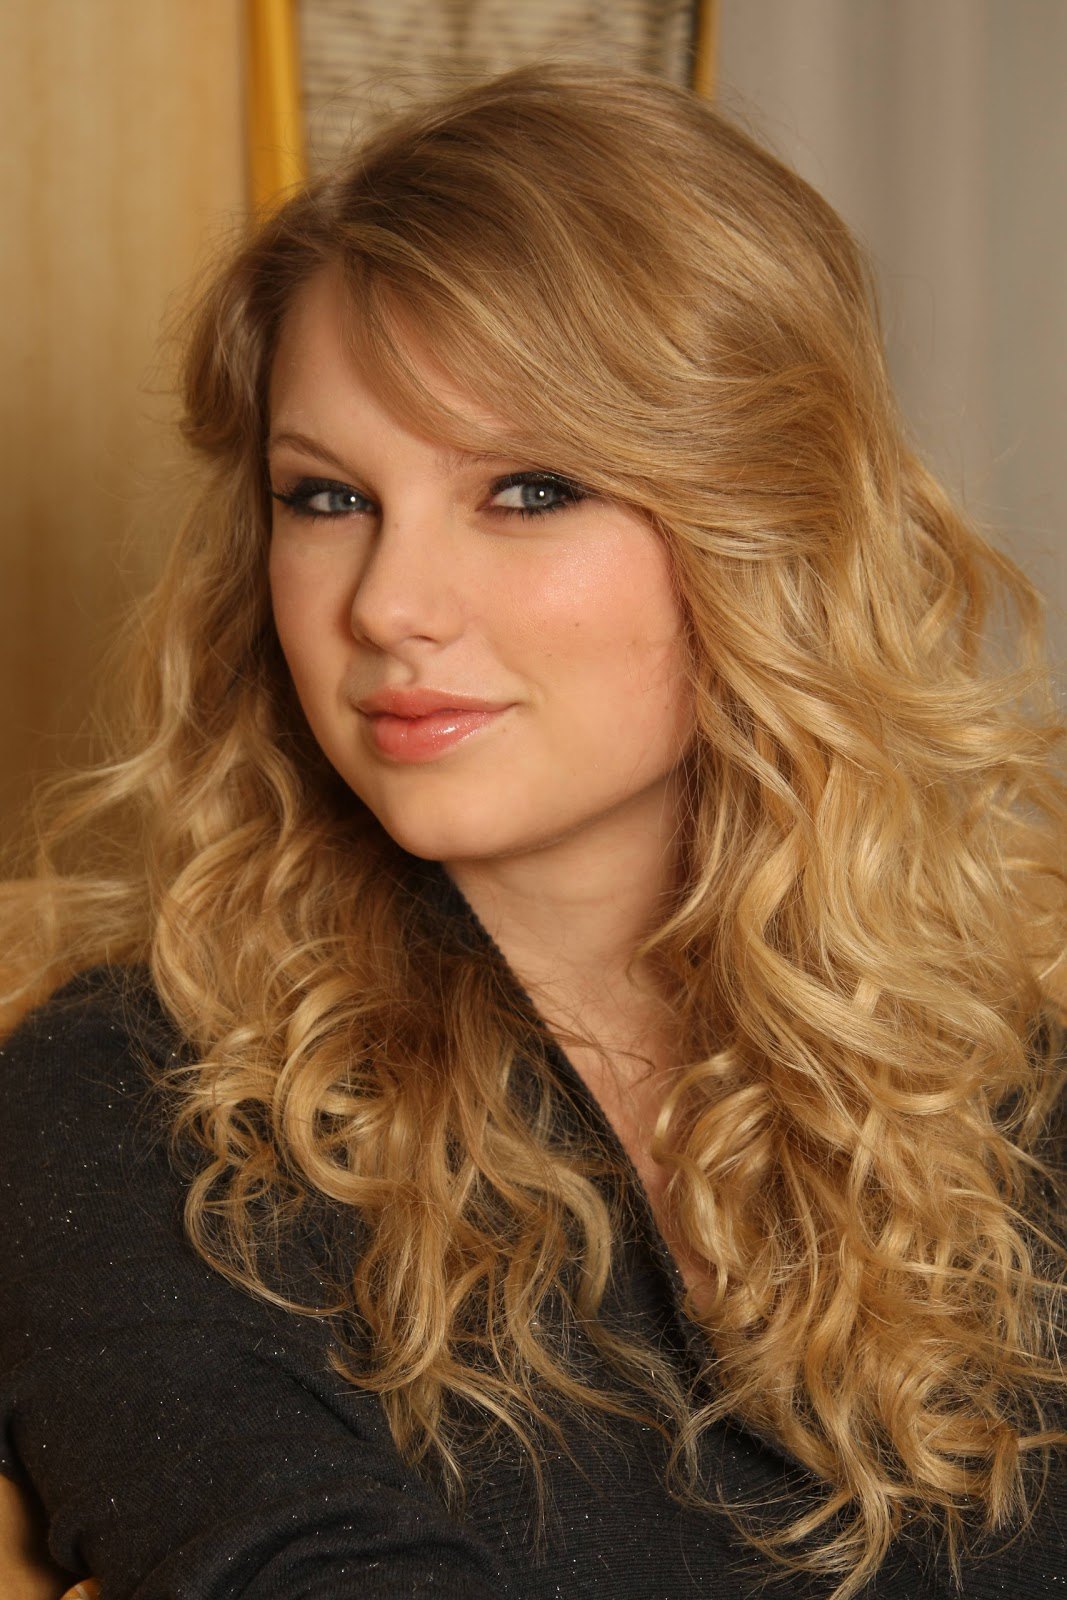 http://3.bp.blogspot.com/-mdQM2Lknjsk/Tt-BlTDj7aI/AAAAAAAAC-M/I4kVAyrCkvA/s1600/Taylor+Swift+Hairstyles%252C+Celebrity+Taylor+Swift+Hairstyles%252C+Taylor+Swift+Hairstyles+Photo%252C+Latest+Taylor+Swift+Hairstyles%252C+Taylor+Swift+Hairstyles+Cutting%252C+Girl+Hairstyle%252C+Photo+Gallery+%252820%2529.jpg